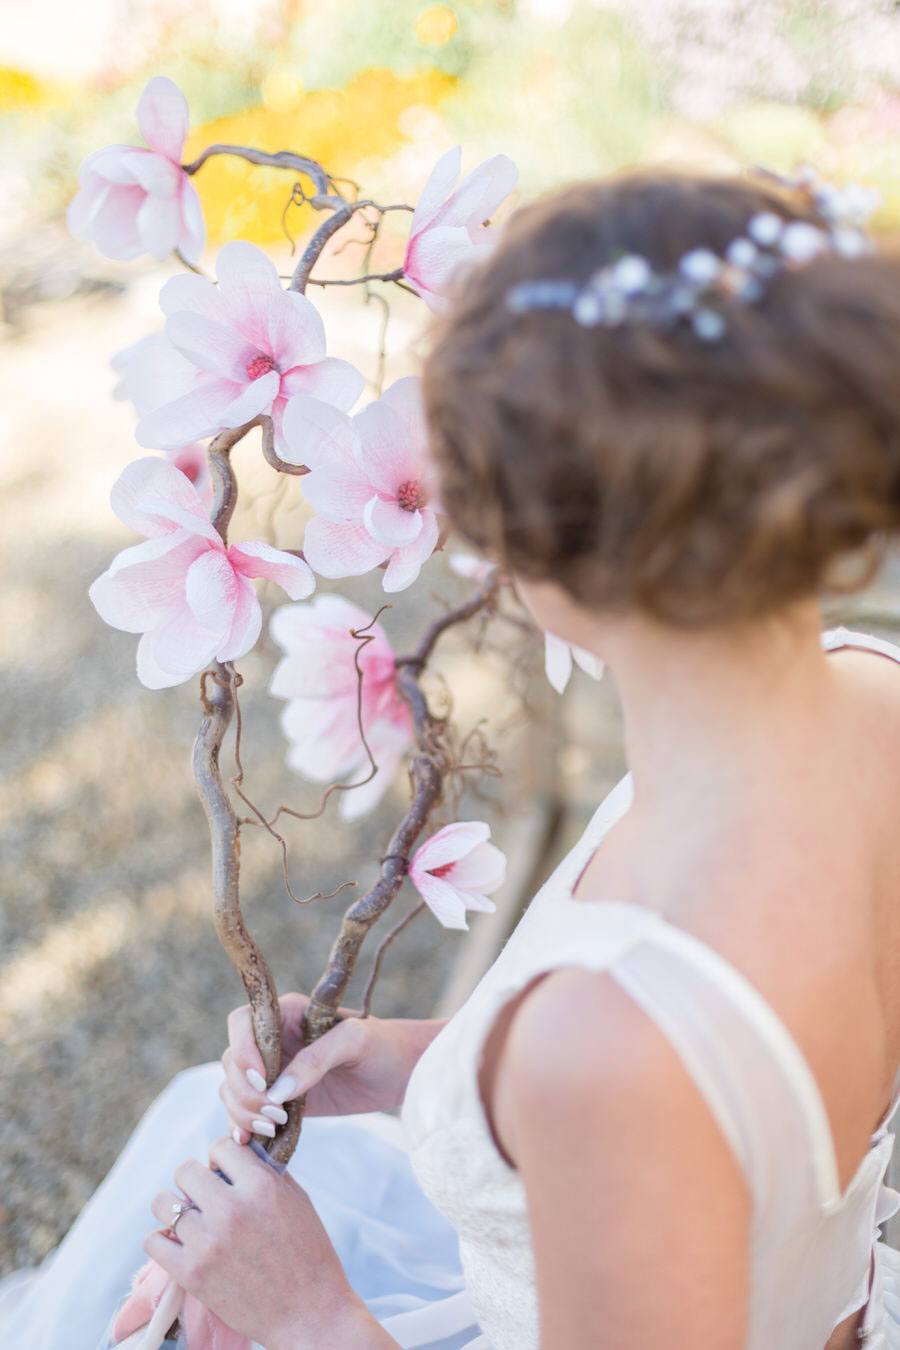 Natural Elements! A Fine-Art Inspired Editorial With Magnolia & Cherry Blossoms0021